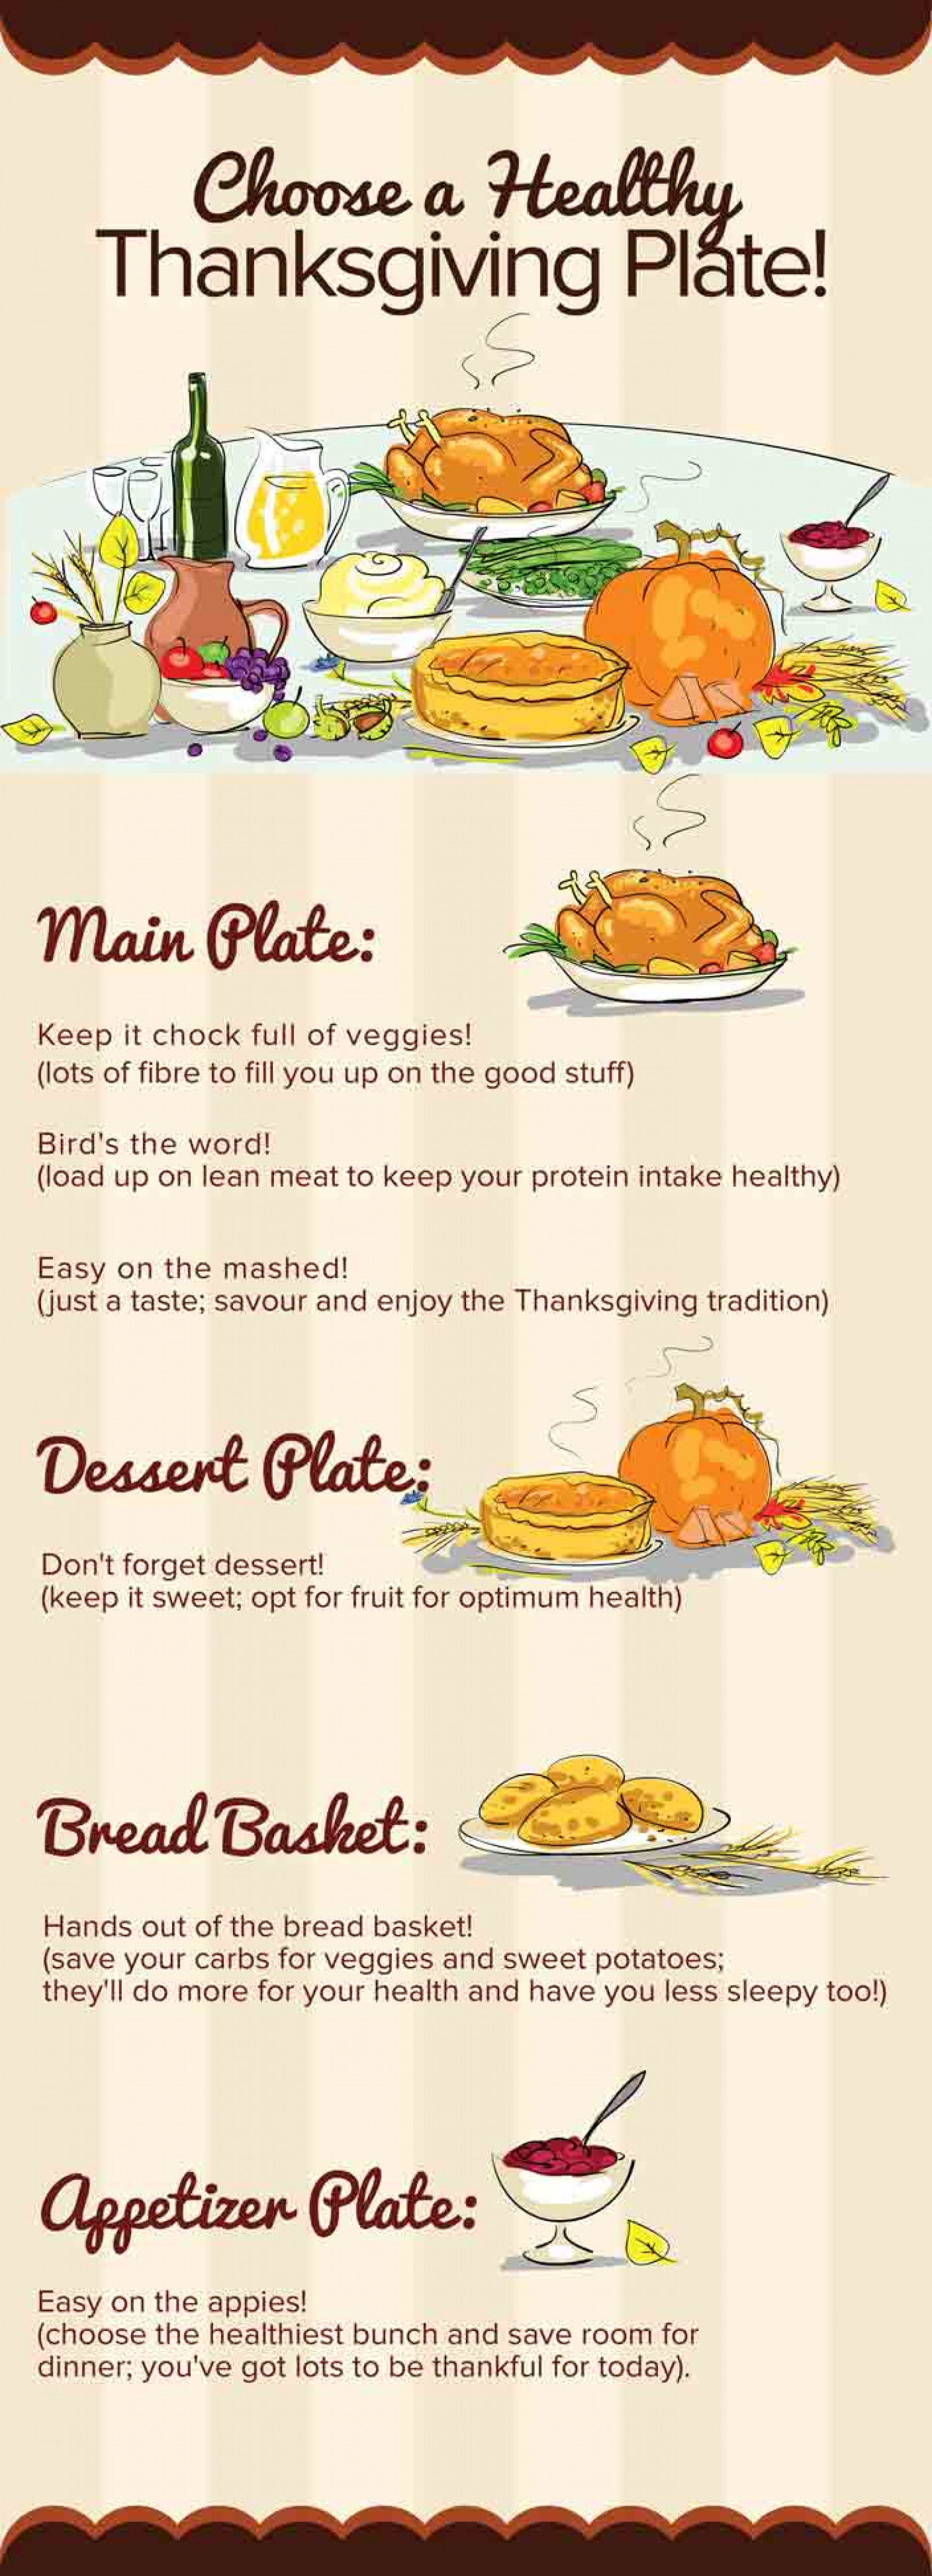 Choose a Healthy Thanksgiving Plate Infographic